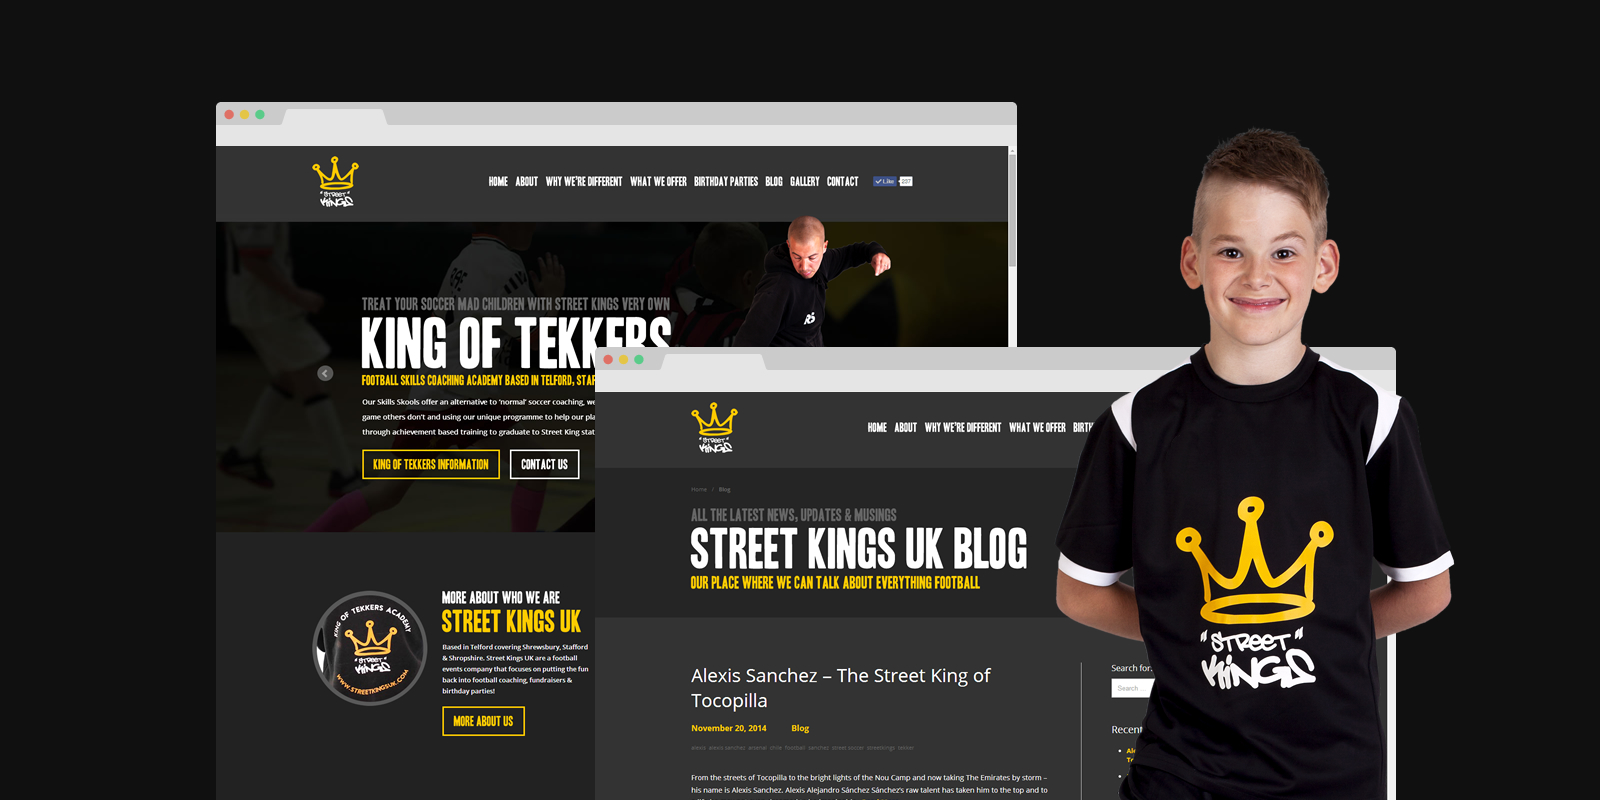 PinkPetrol Office356 SharePoint Branding - Street Kings UK